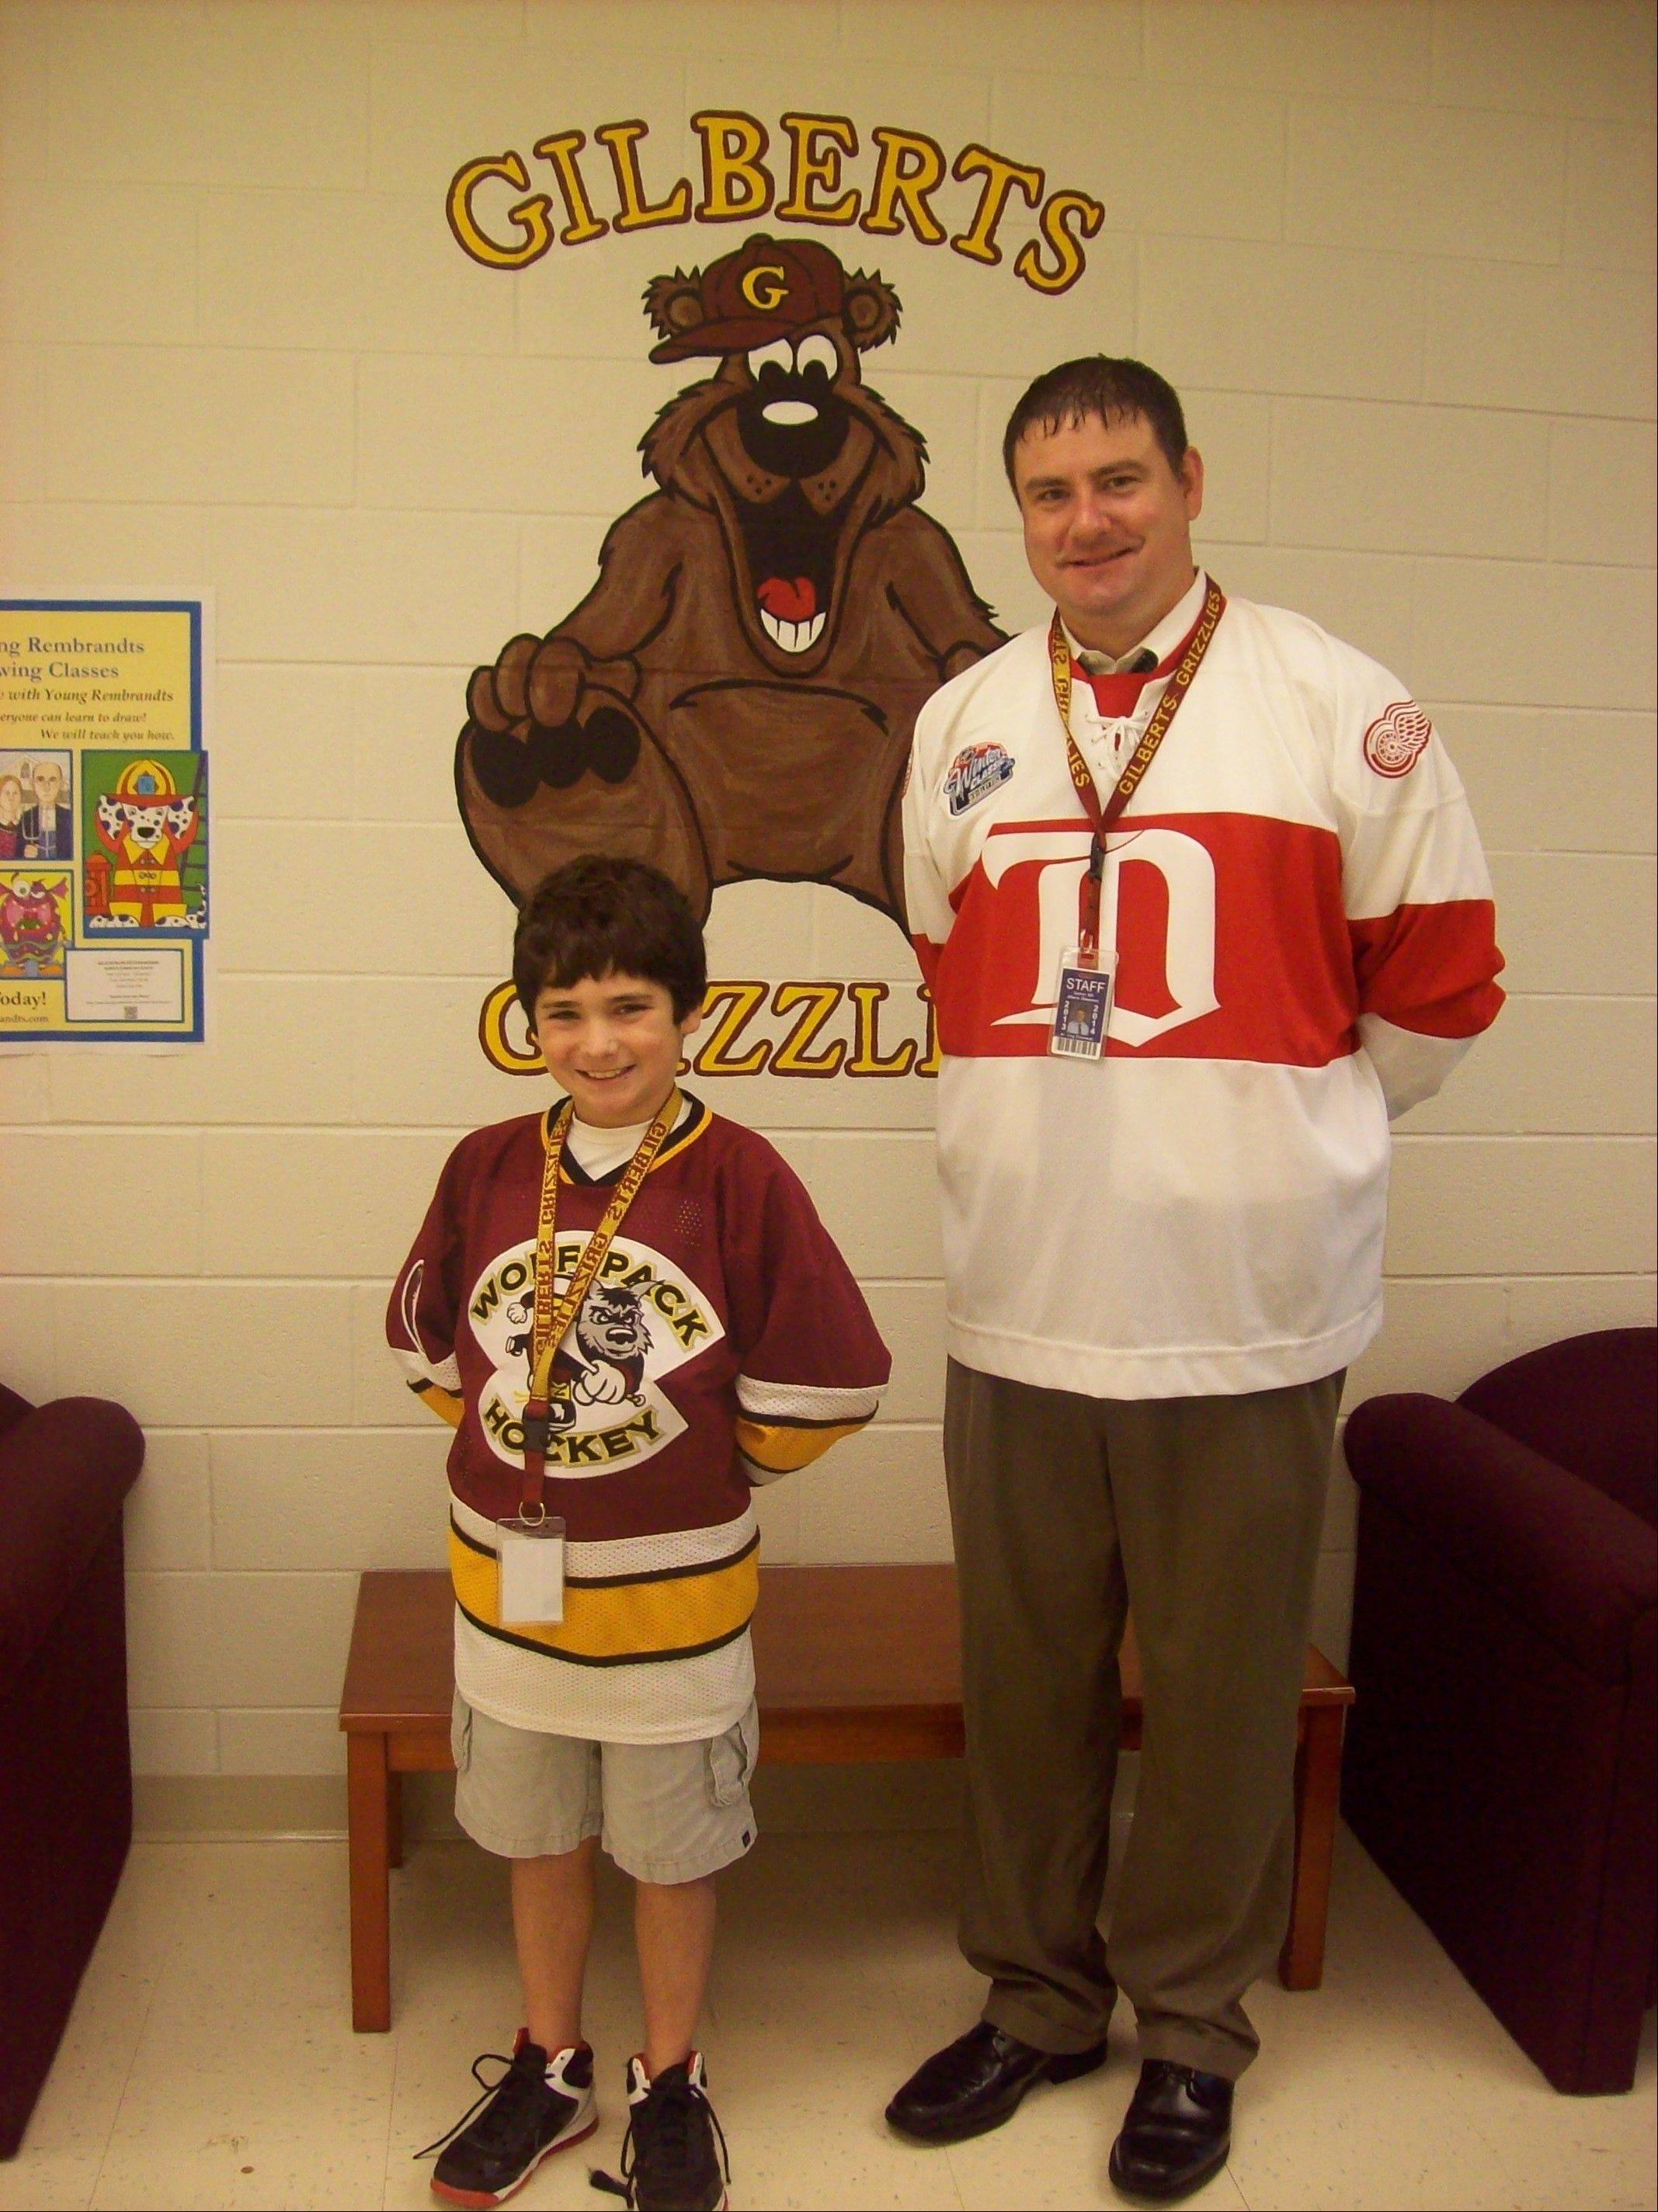 Blackhawks fan Vincenzo Pellegrino, left, a fifth-grader at Gilberts Elementary School, won a bet with Principal Craig Zieleniewski, a Red Wings fan, as to who would win the Stanley Cup. Pellegrino's prize? To be principal for a day.